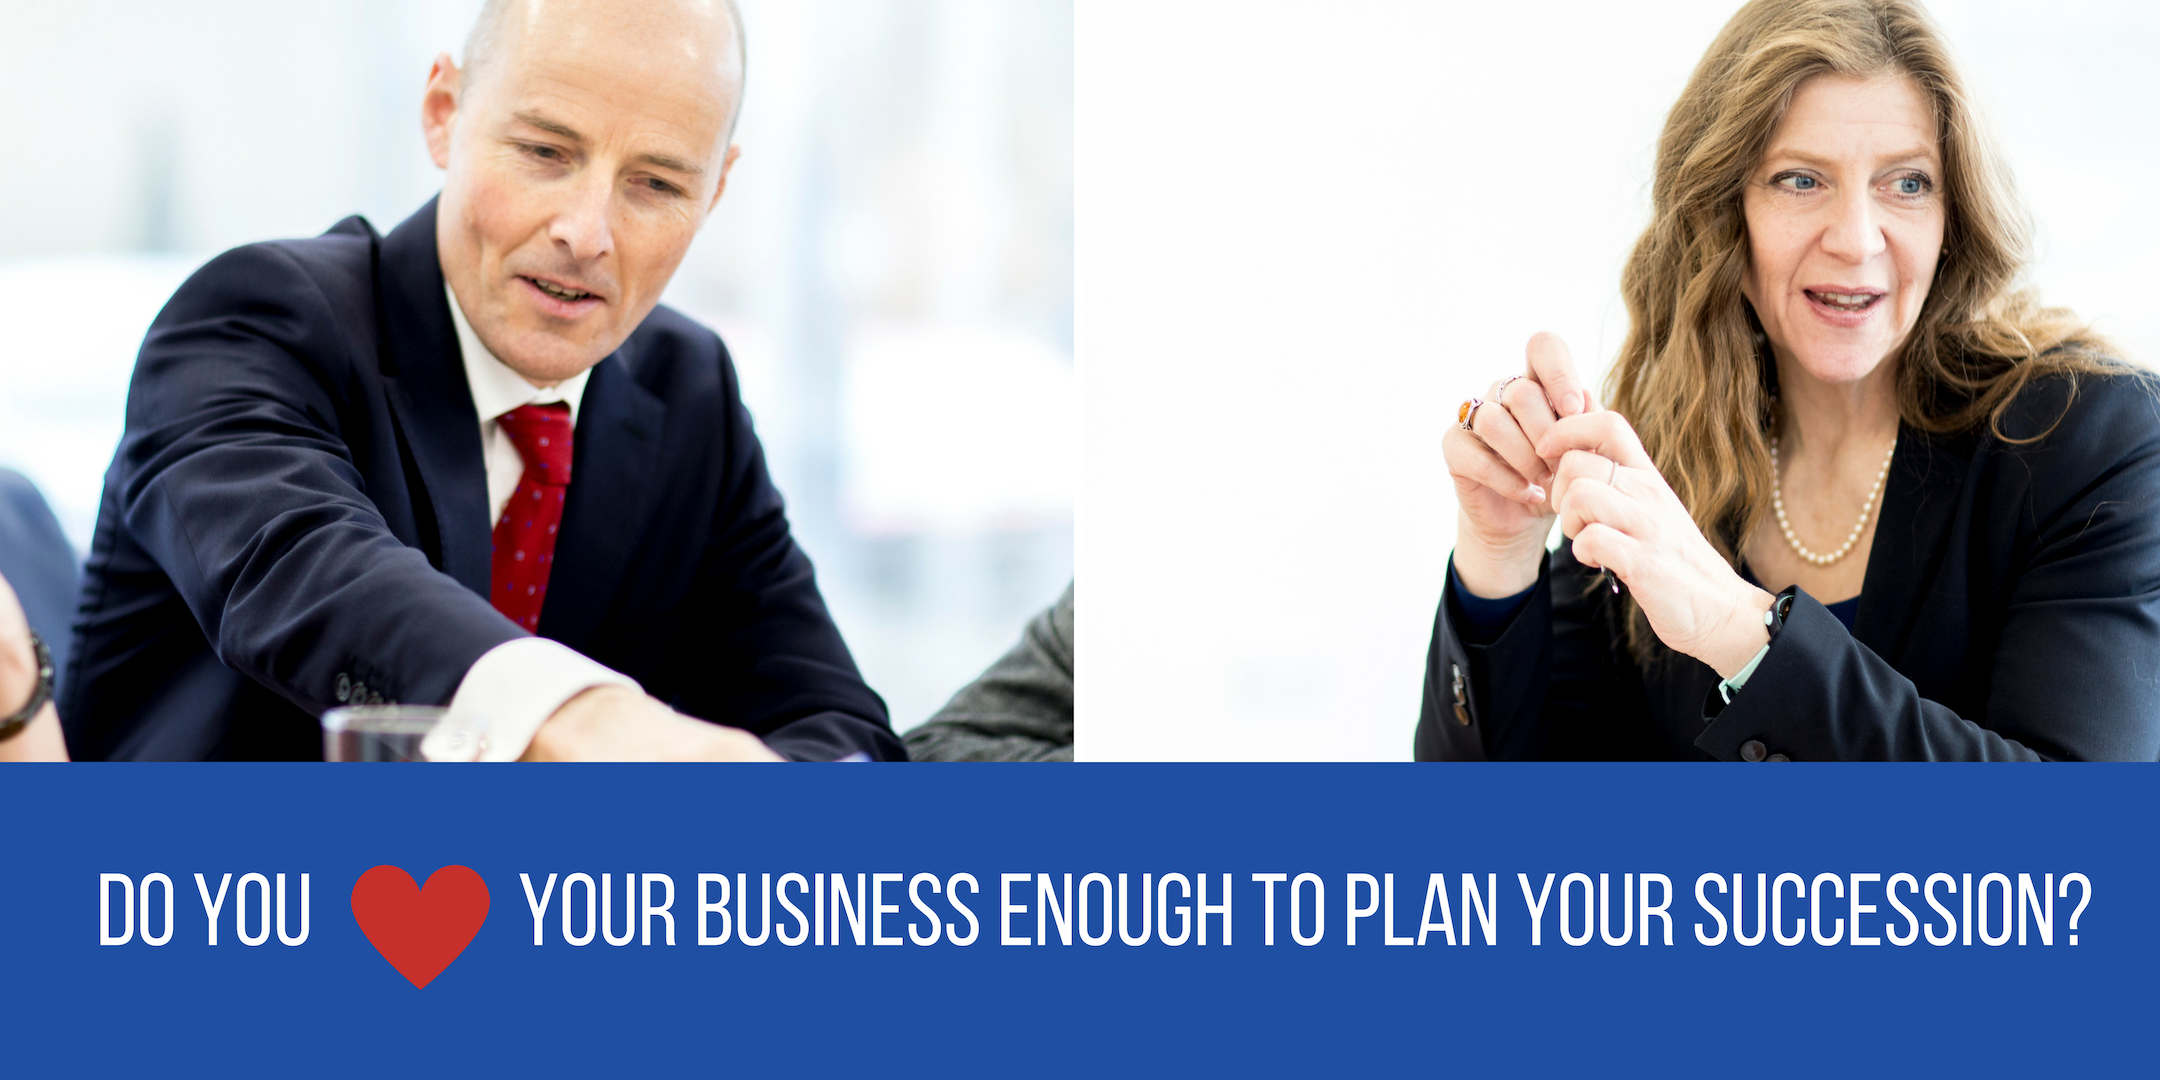 Do you LOVE you business enough to plan your succession?